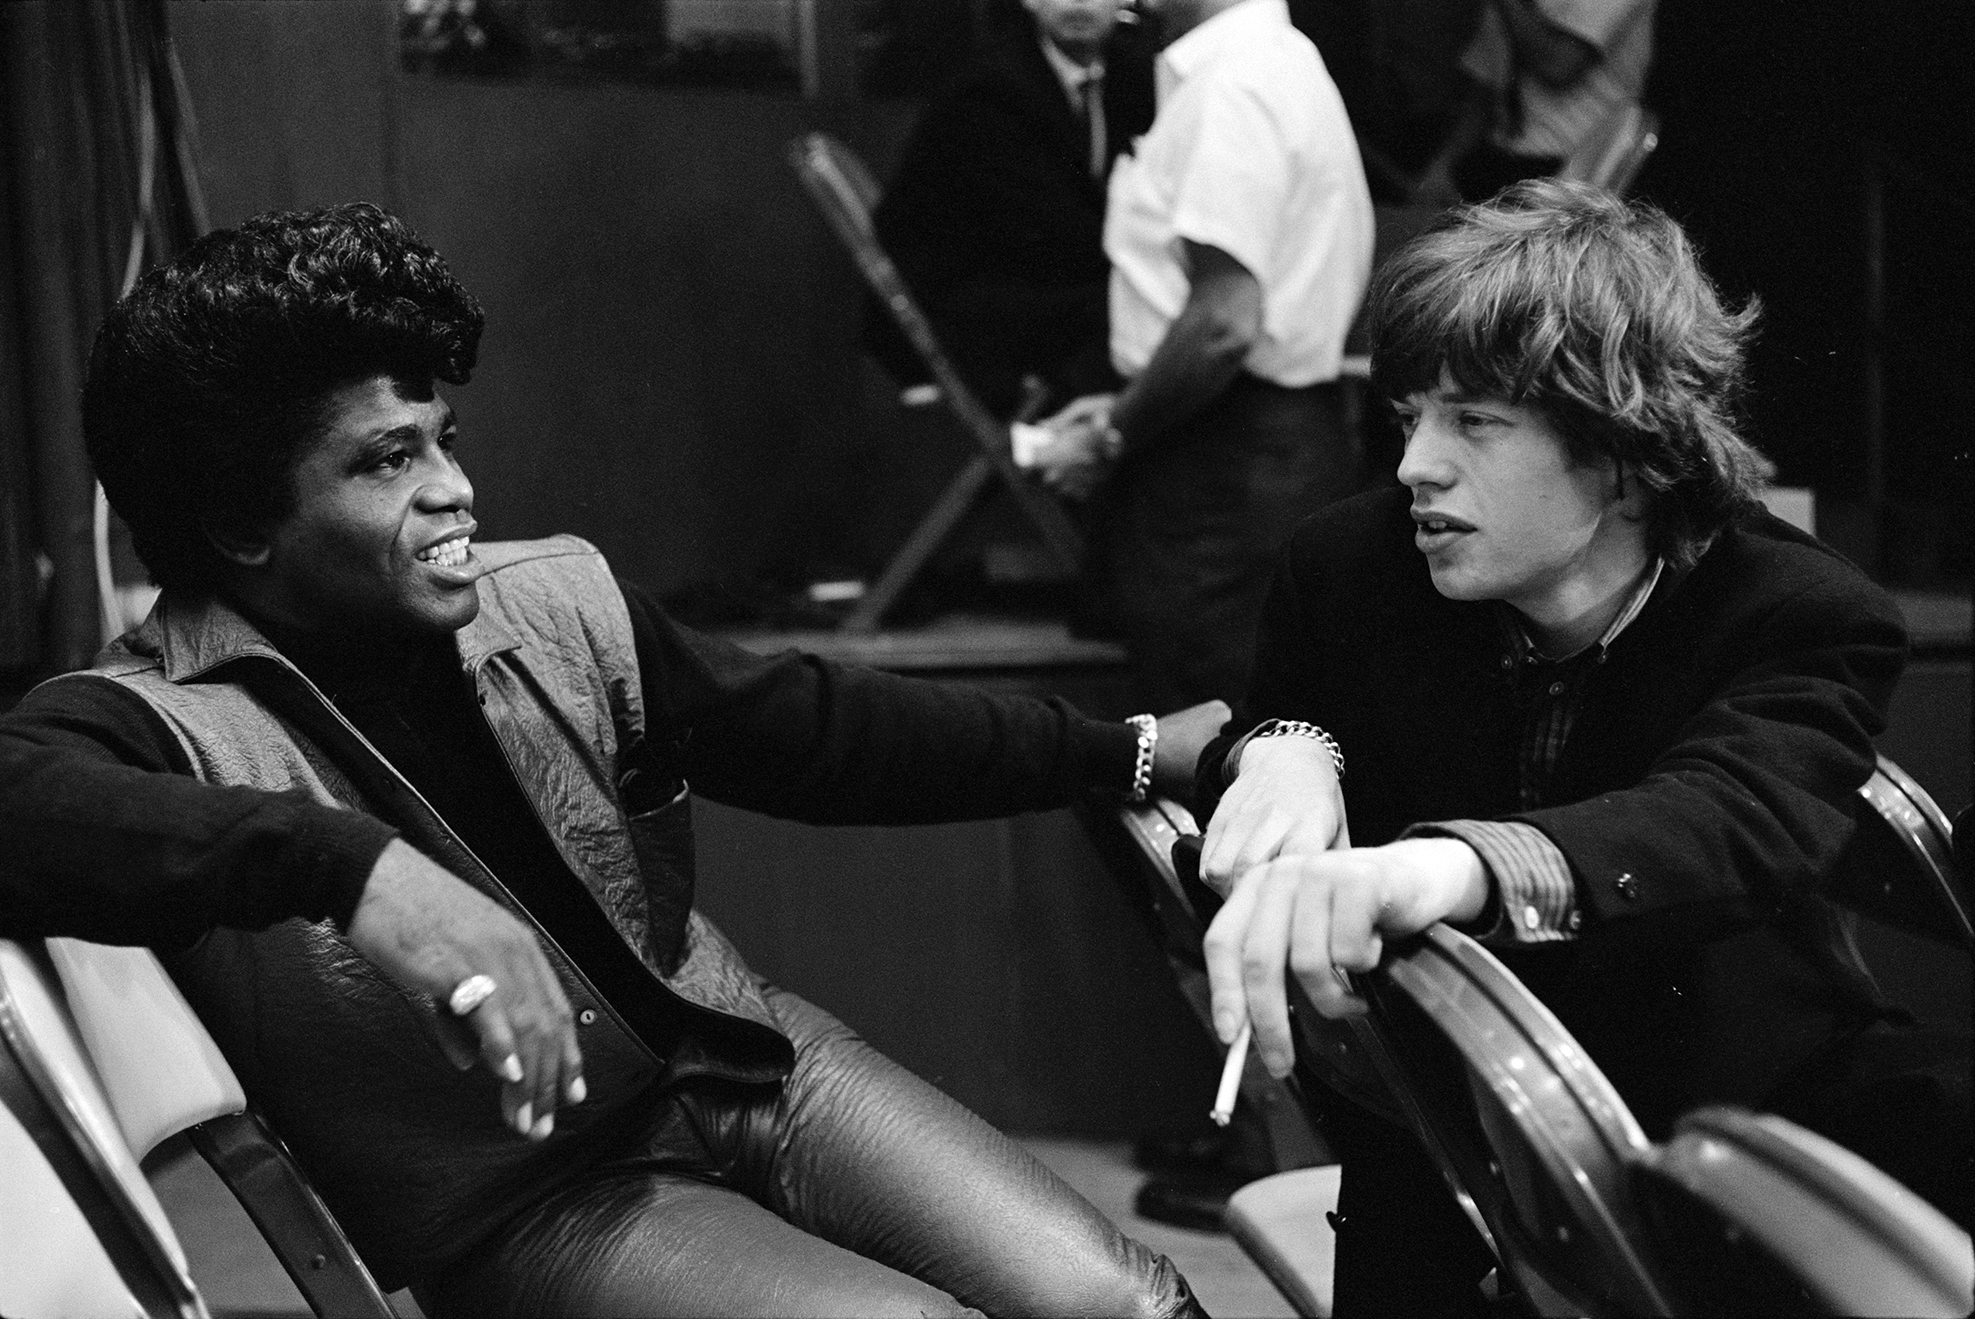 This photo from the Bob Bonis Archive, taken on October 28, 1965, shows Mick Jagger meeting James Brown for the first time.